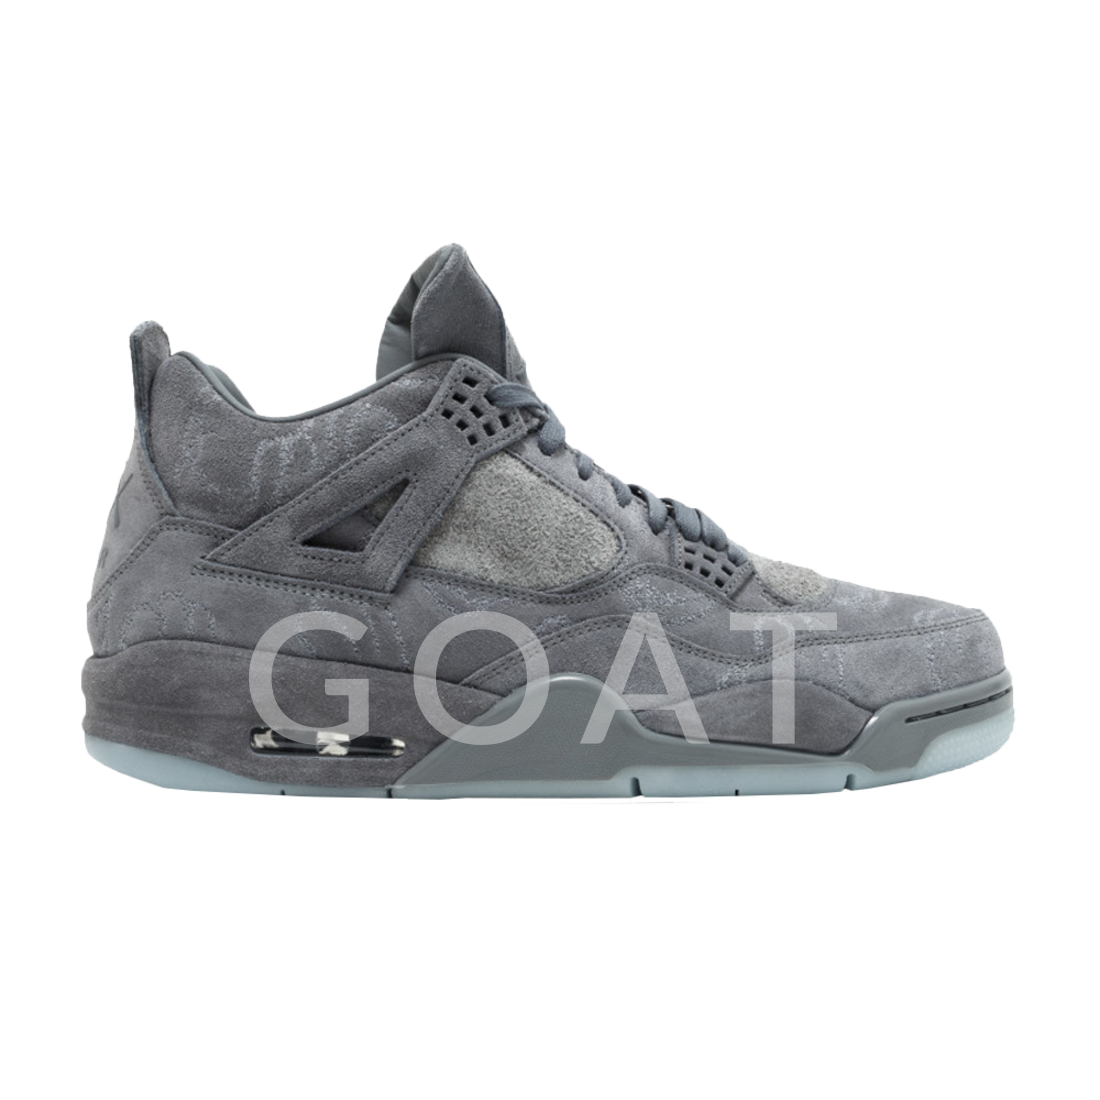 975f787da1d KAWS x Air Jordan 4 Retro - Air Jordan - 930155 003 - cool grey white